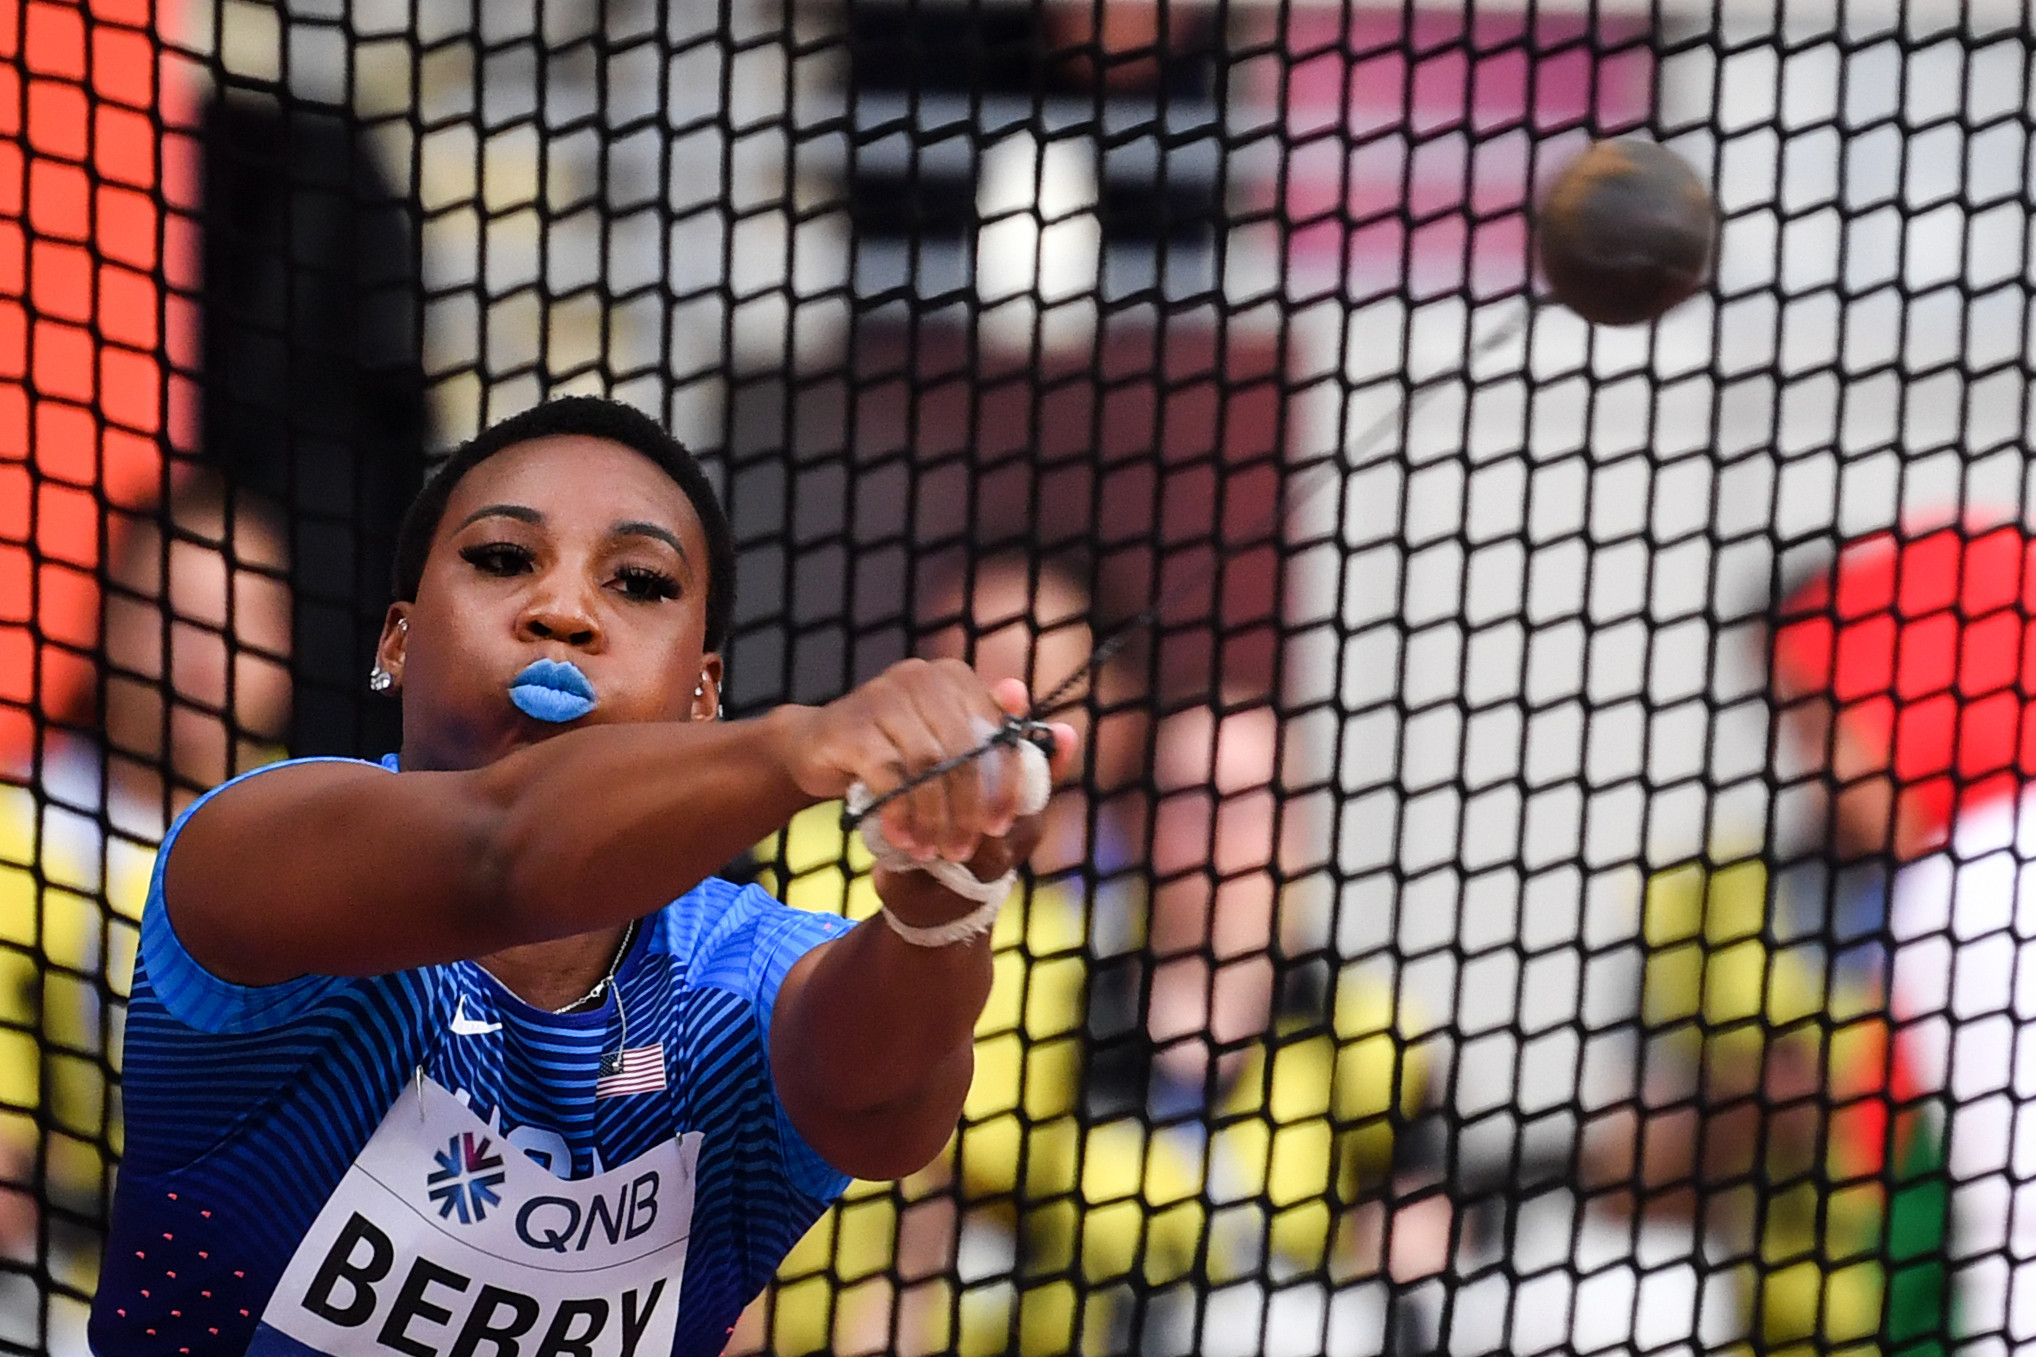 Hammer thrower Gwen Berry has called for the IOC to remove Rule 50 ©Getty Images